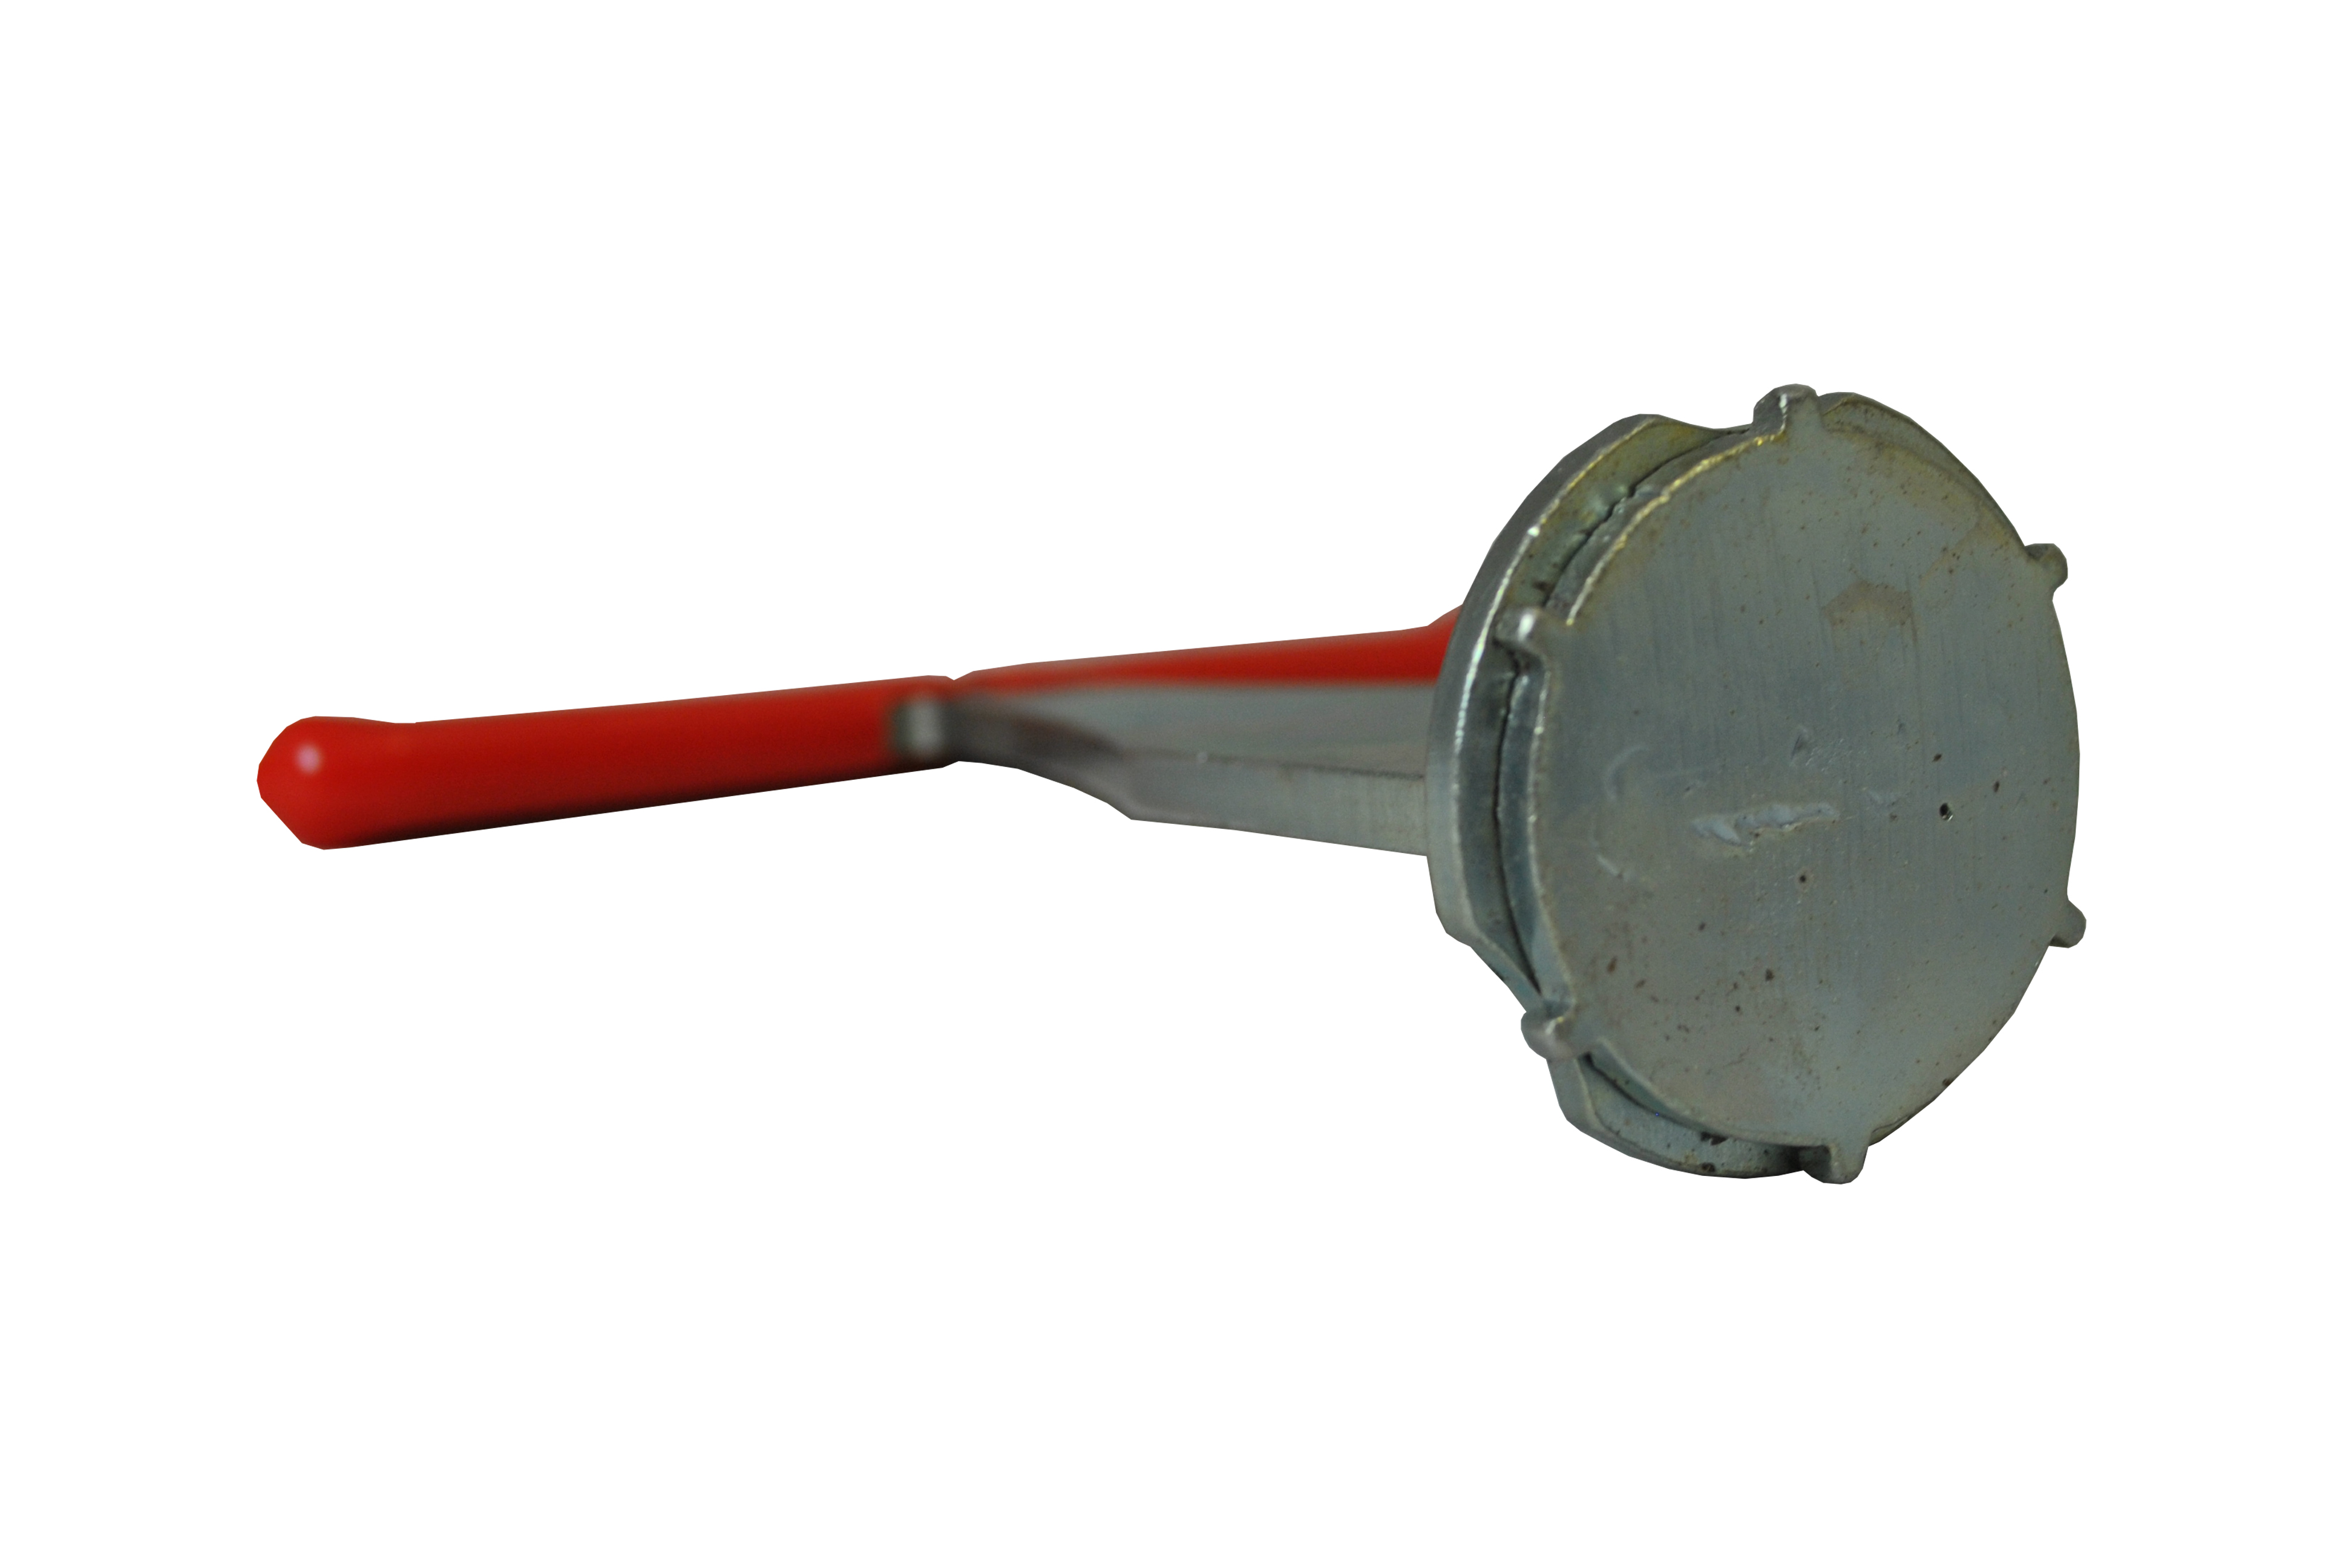 Jet Removal Tool - Metal Wrench to Remove Hydro Air 10-5300 Wall ...